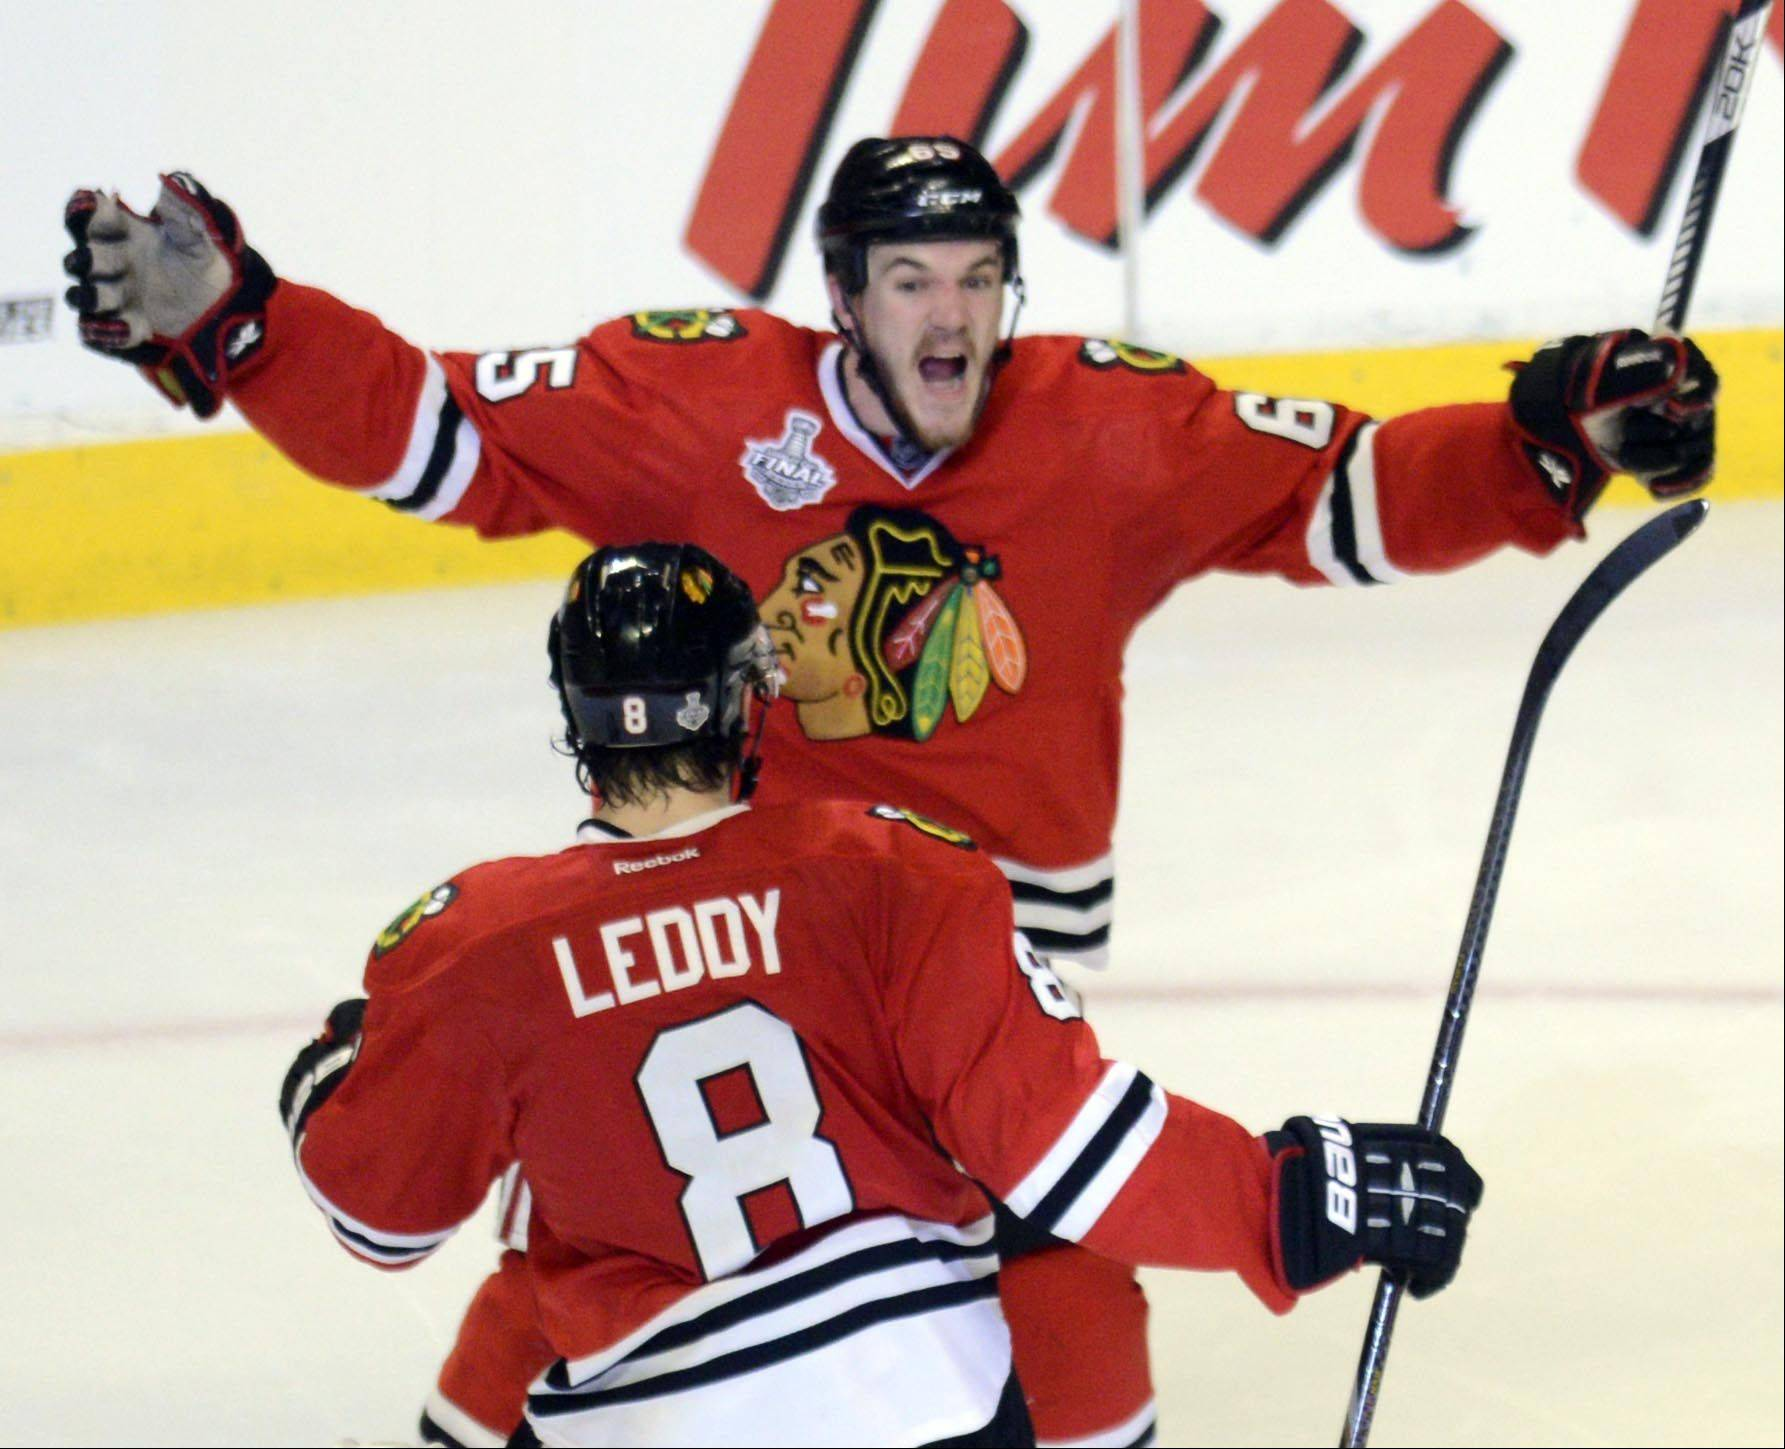 John Starks/jstarks@dailyherald.comChicago Blackhawks center Andrew Shaw reacts after scoring the game winning goal in the third overtime against the Boston Bruins during Game 1 of the Stanley Cup Finals Wednesday at the Untied Center in Chicago.